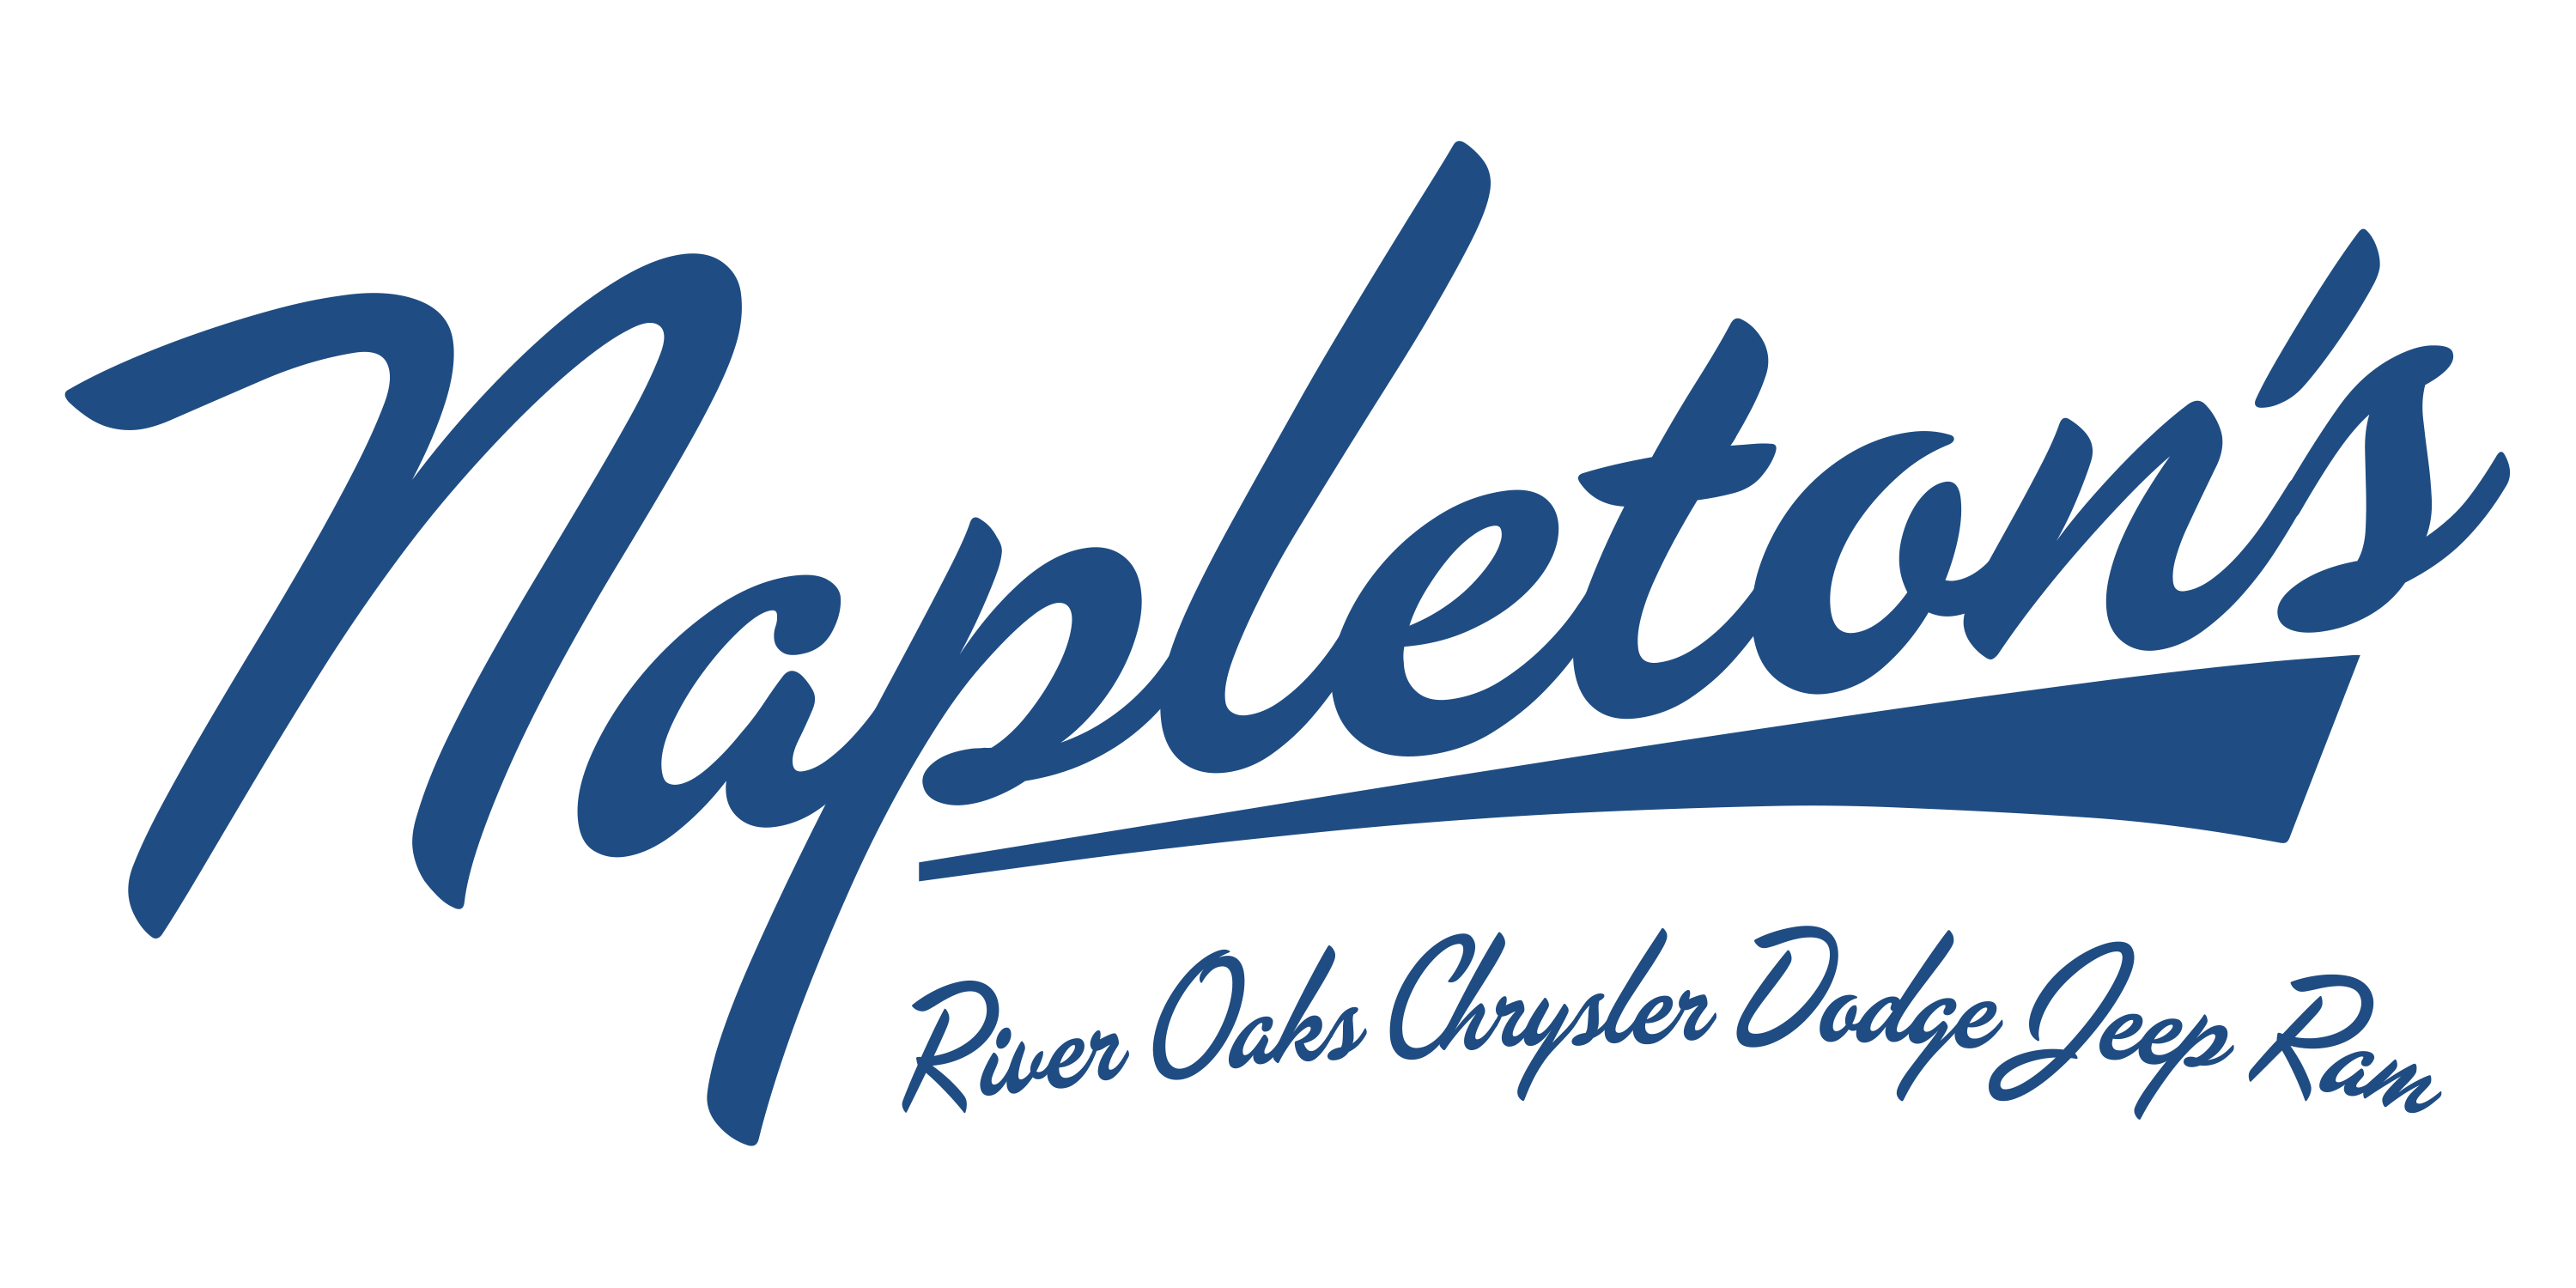 Napleton's River Oaks Chrysler Dodge Jeep Ram